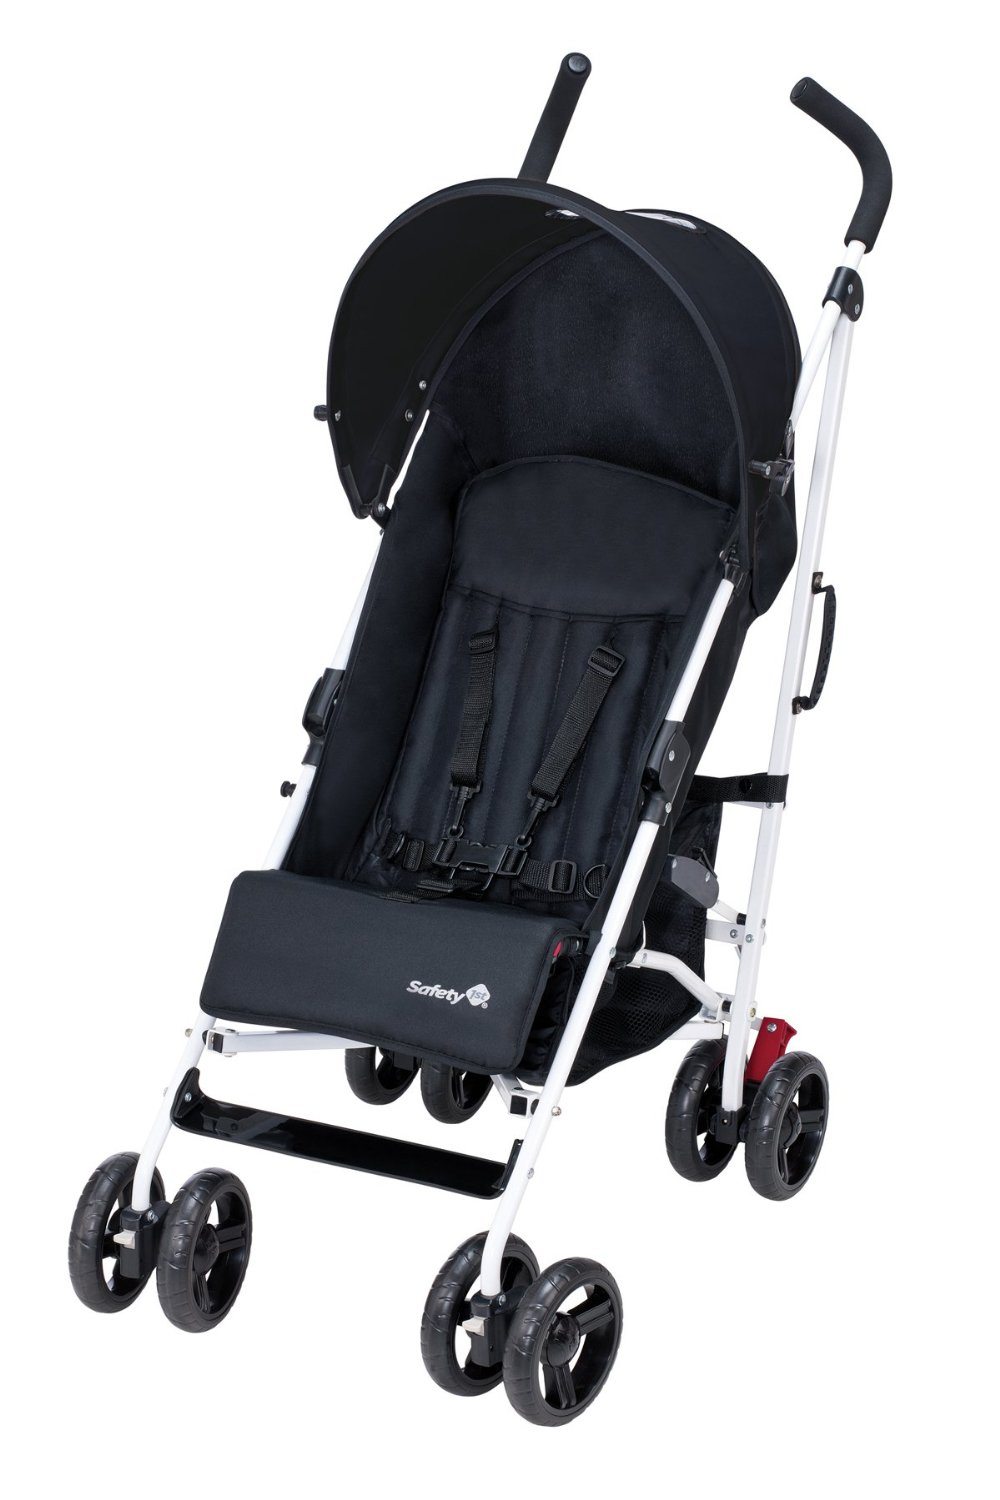 Safety 1st Slim Poussette Canne Multiposition Noir